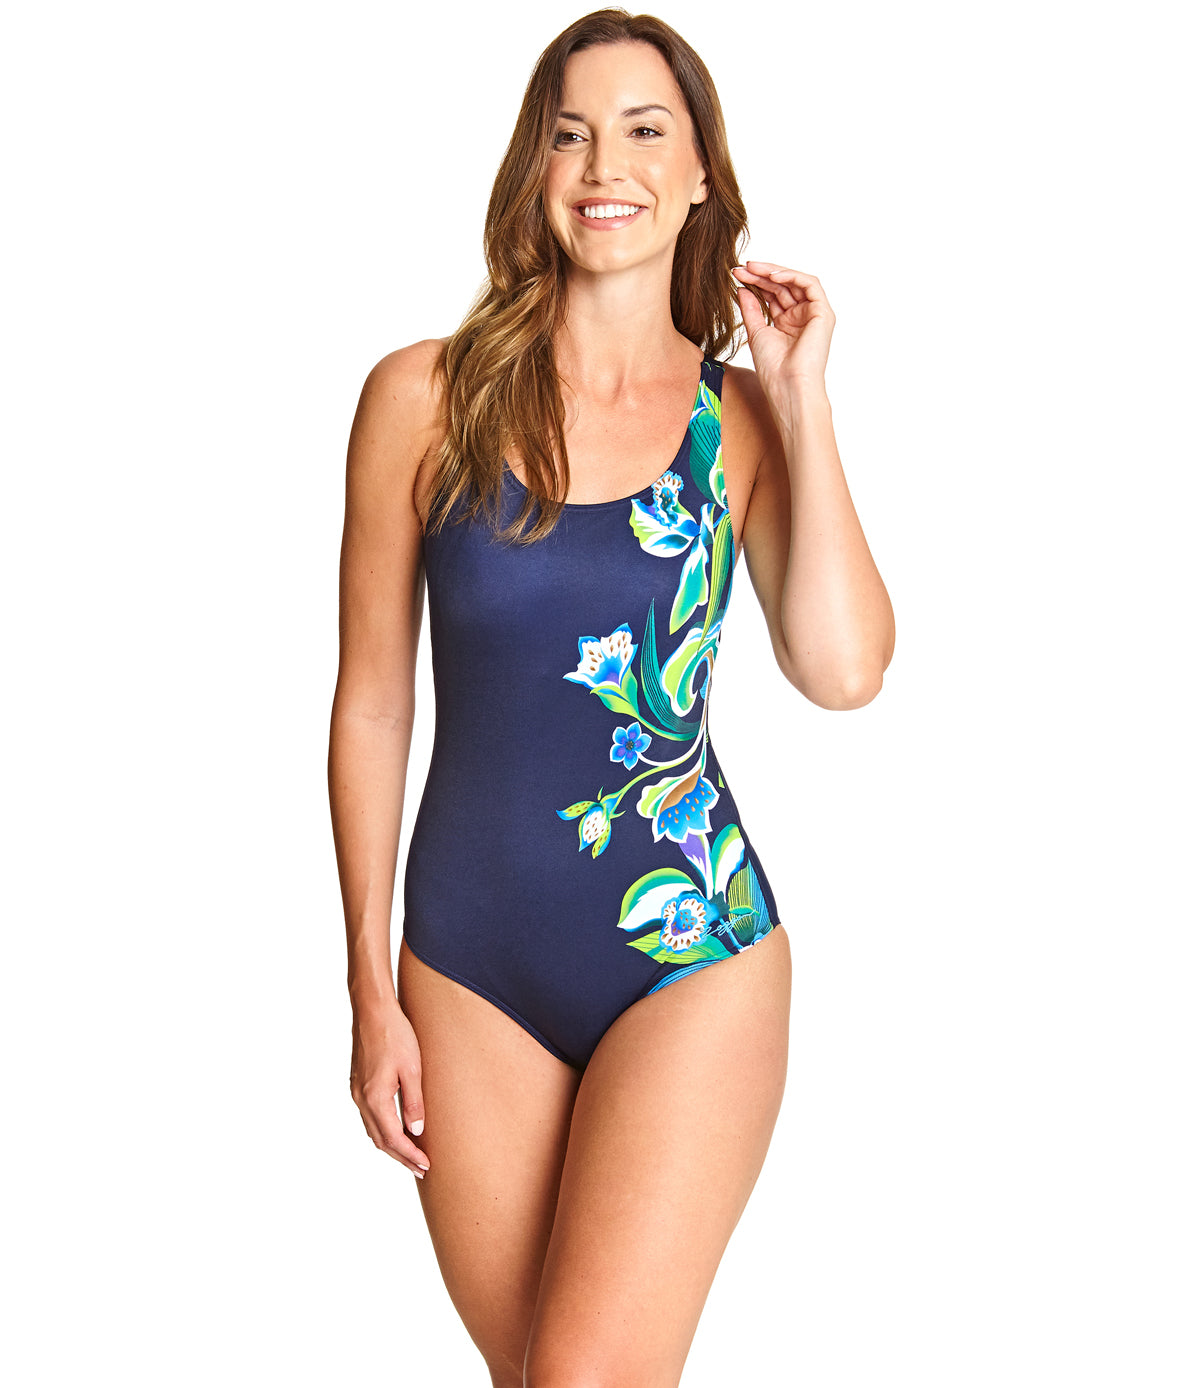 Gladiolus Adjustable Scoopback One Piece